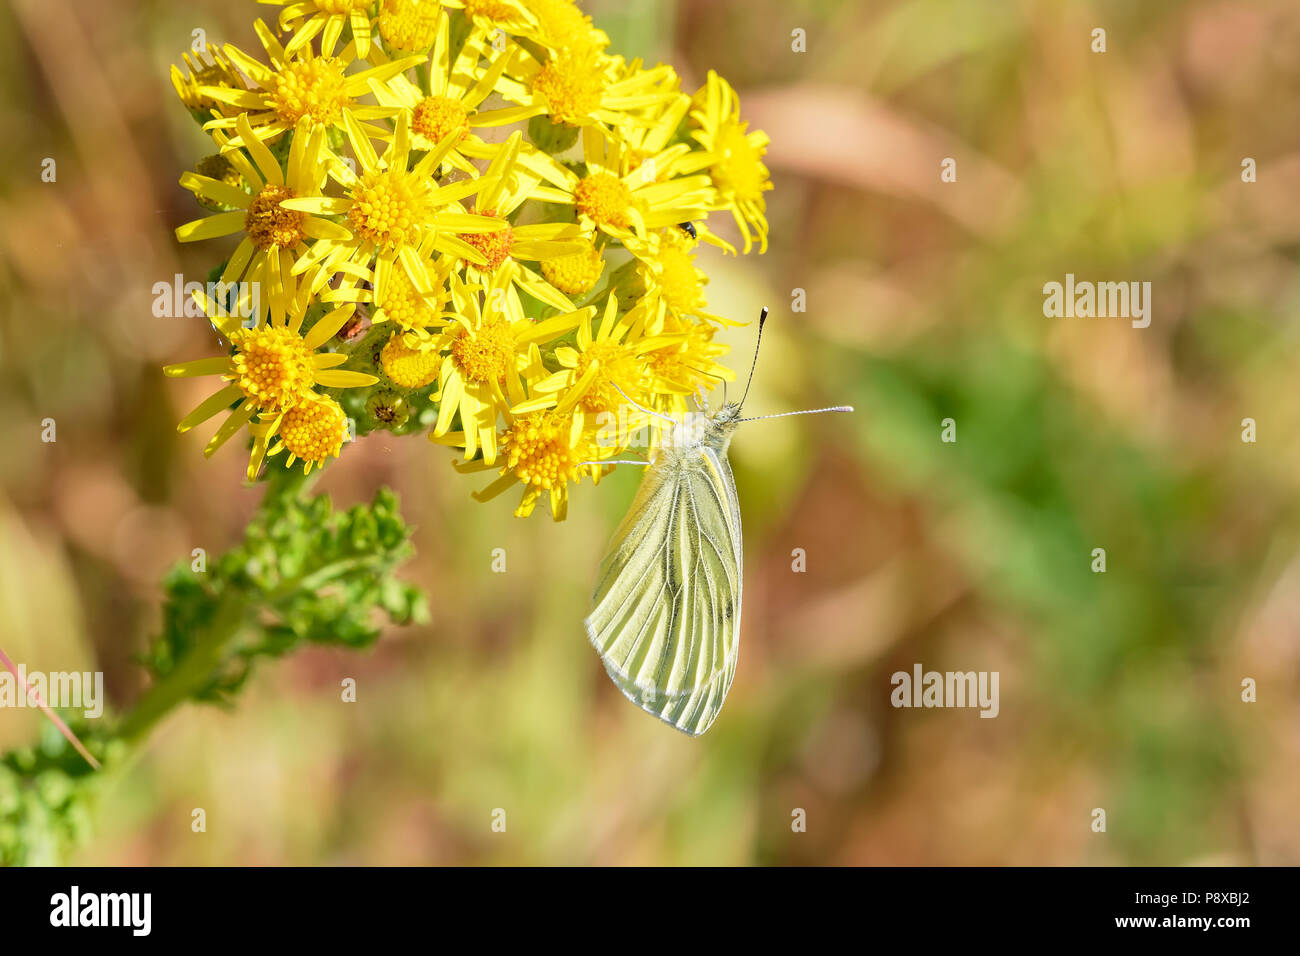 Close up of a Cabbage White butterfly feeding on nectar from a bright yellow Groundsell flower - Stock Image